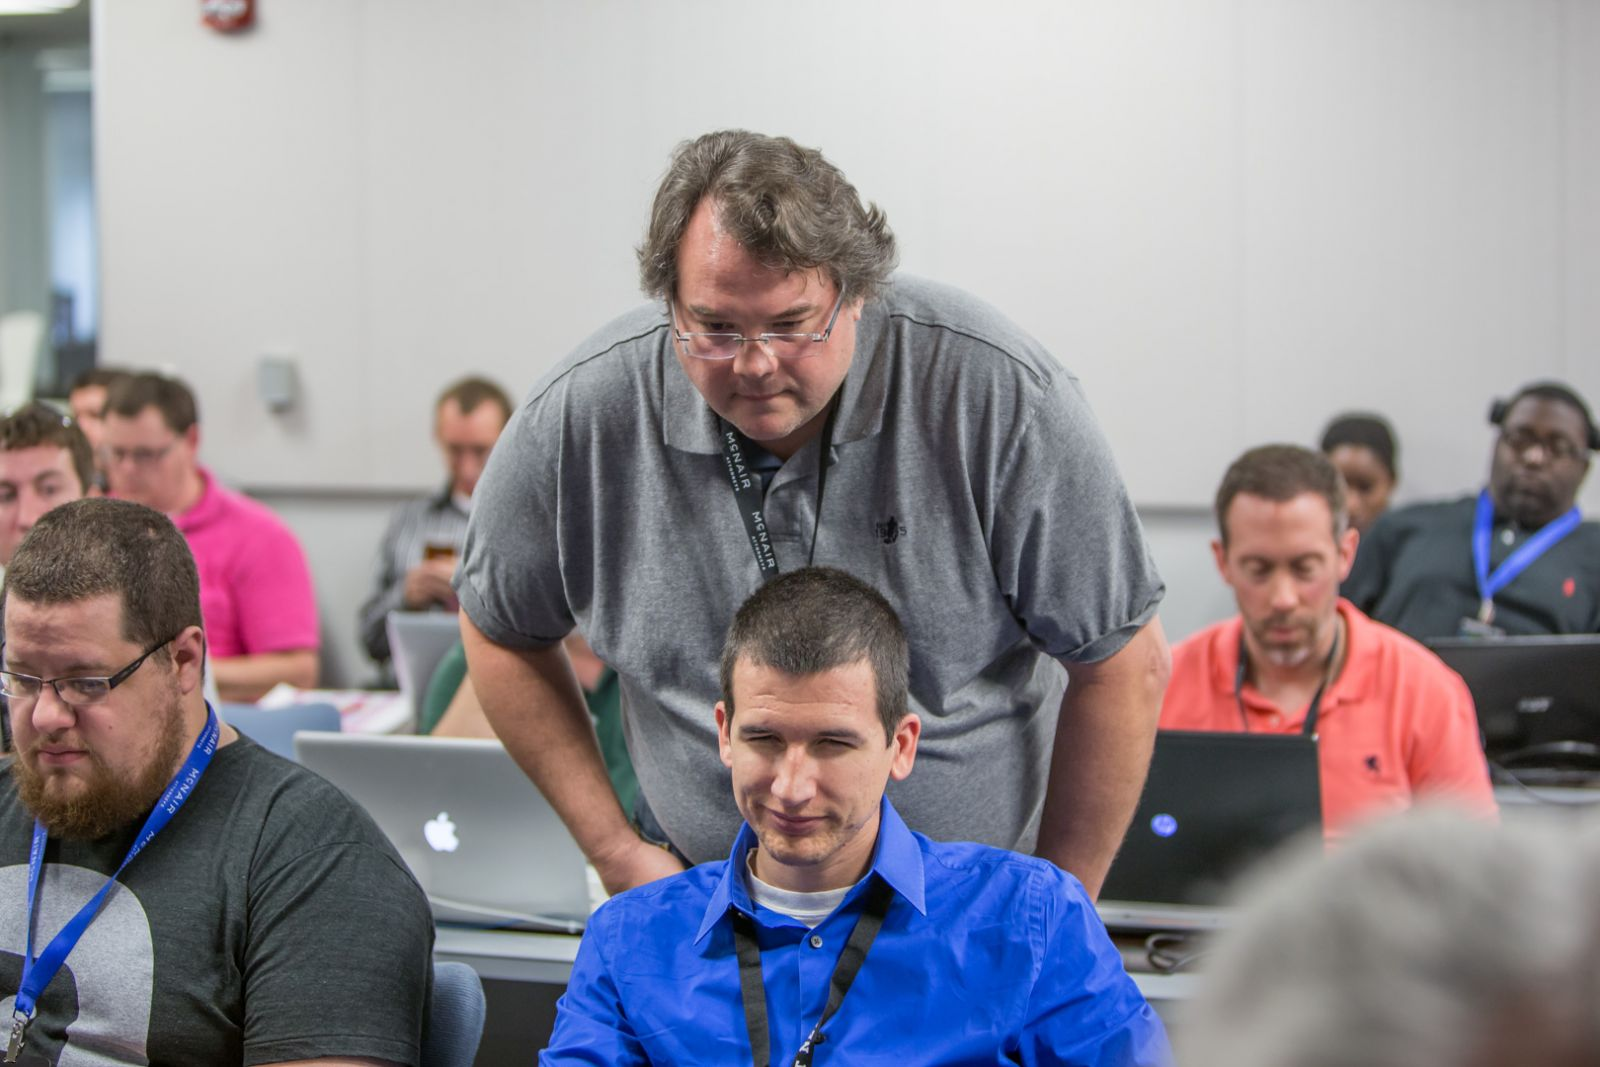 Tom Wilson (standing), the founder of Jack Russell Software, will head up a new innovation center in Mount Pleasant focused on technology and health care. Its first initiative is launching a 12-week coding school this fall. (Photo/Posscon 2015)